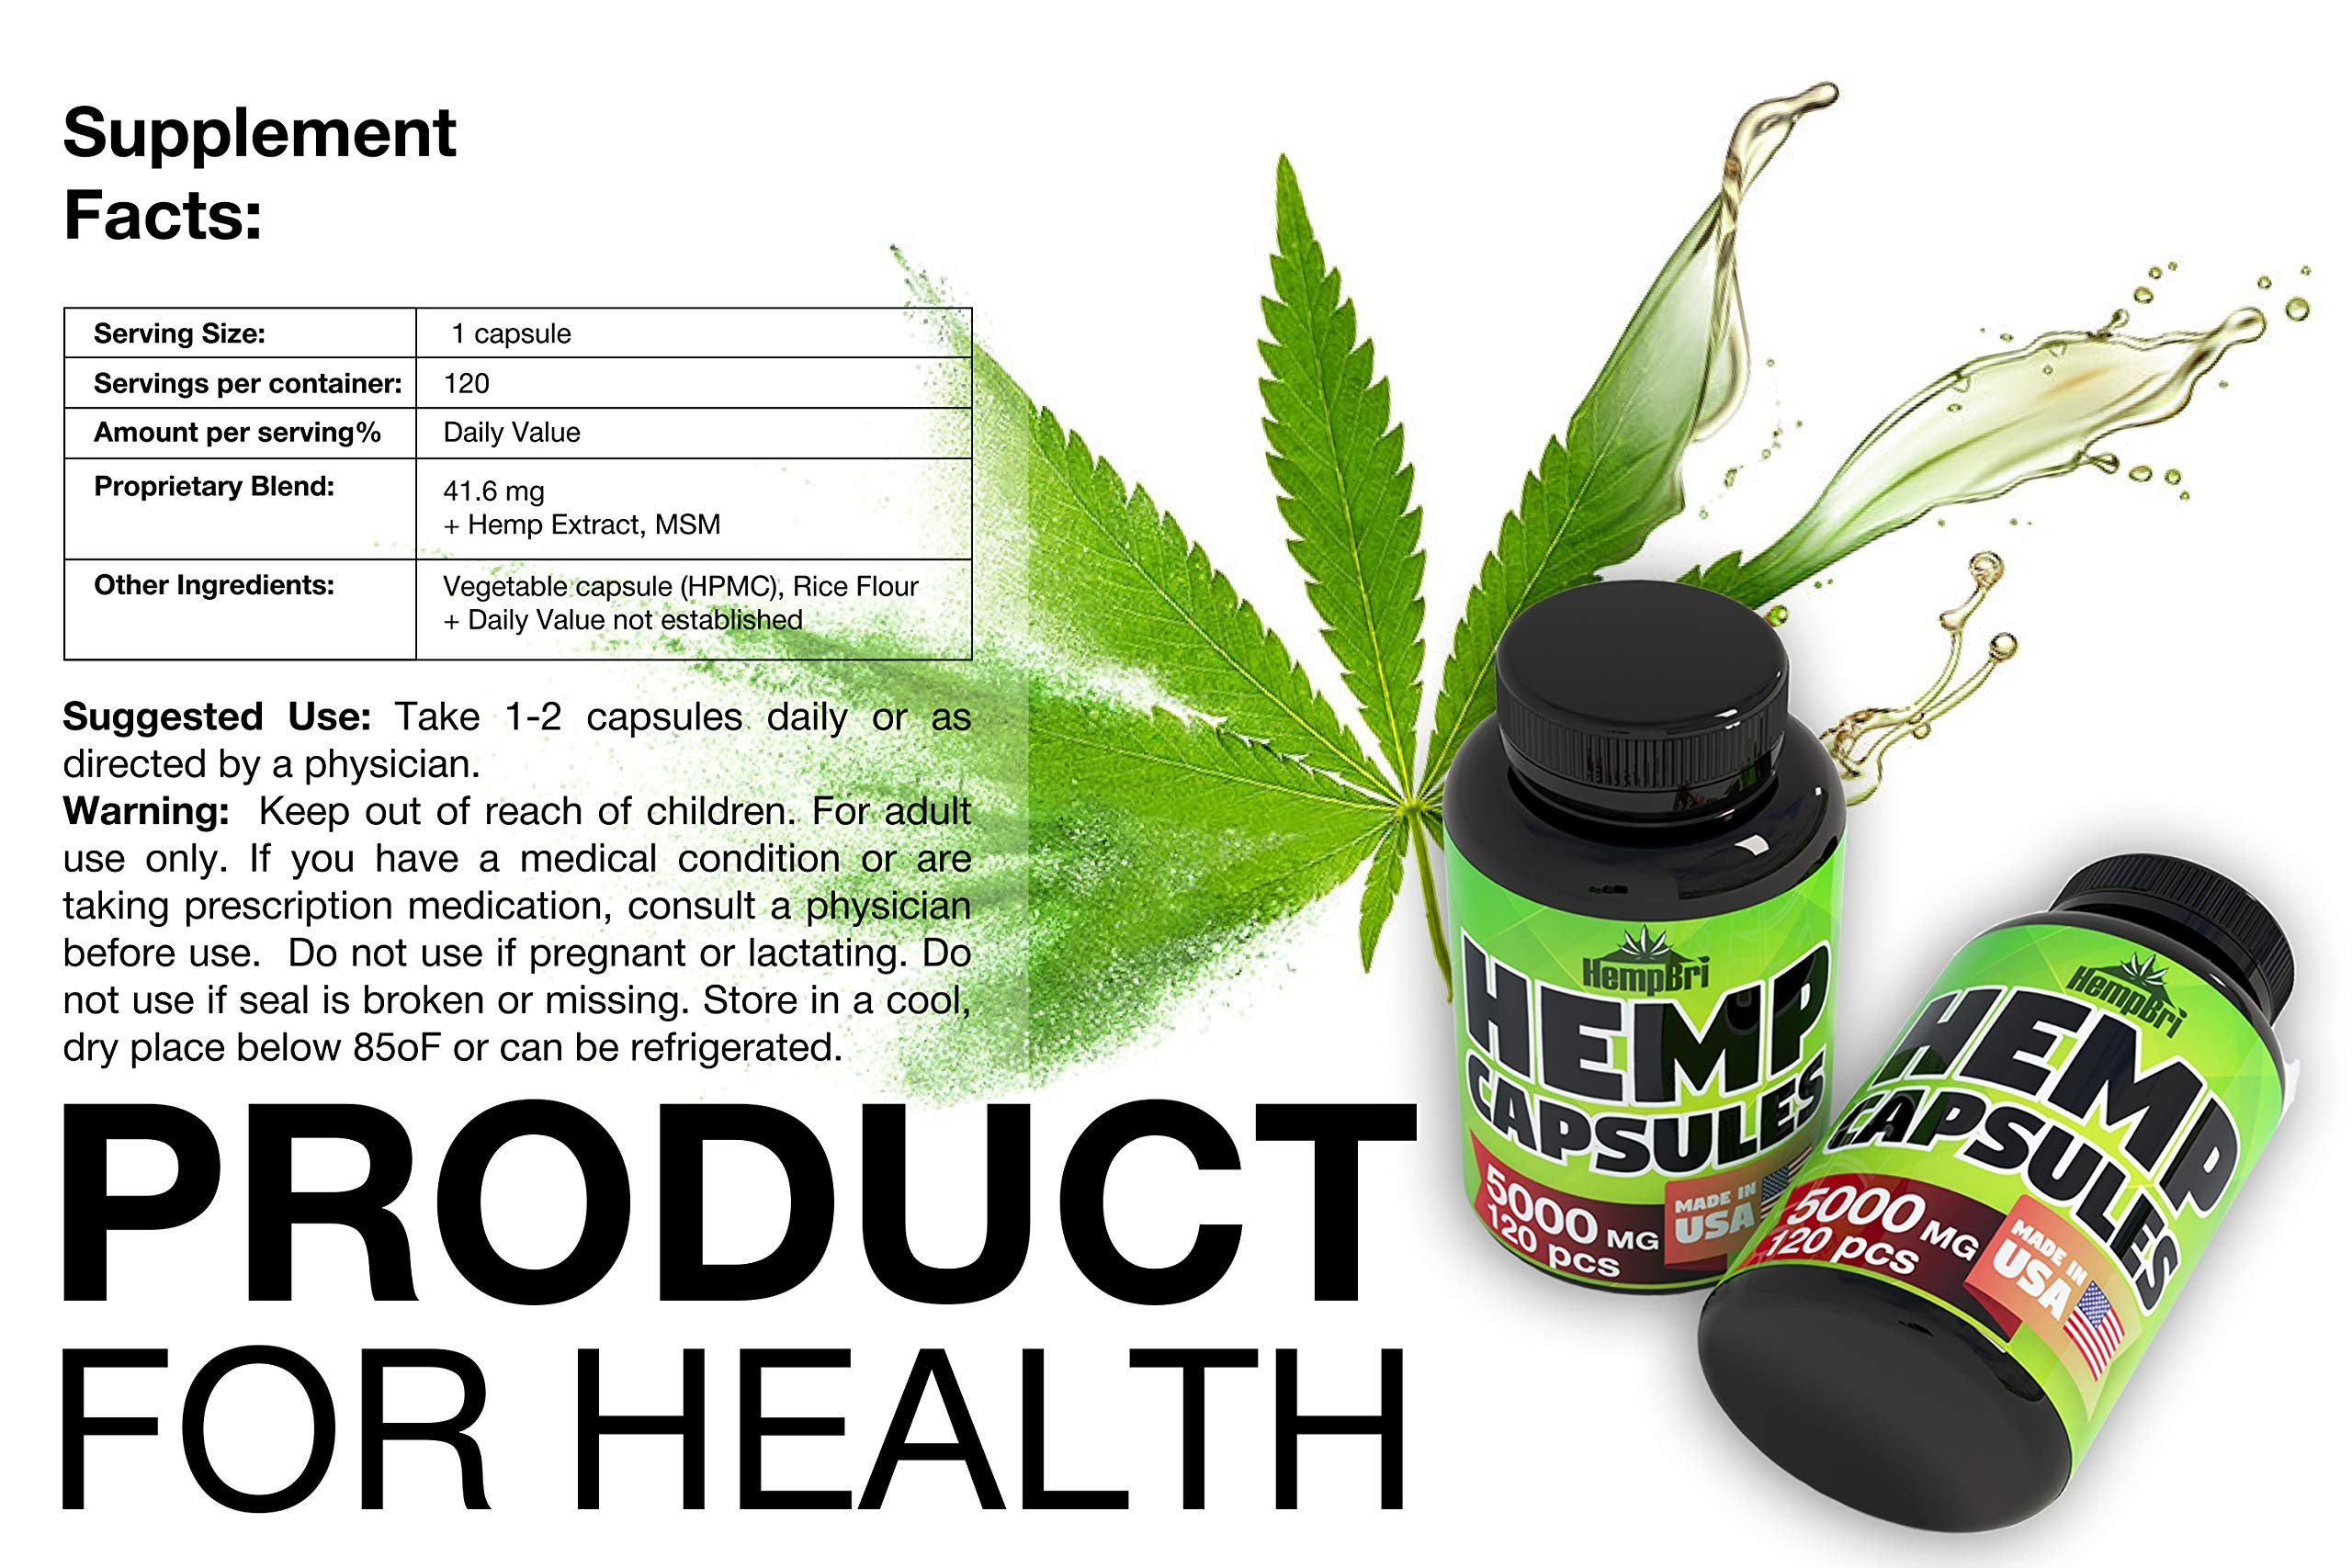 Hemp Oil Extract Capsules For Pain Relief & Anxiety Best Joint Support your Health & Sleep Supplement Pill Tablets Immune and Mood Anti Inflammatory Natural Organic Hemp Seed Oils Pure Powder by Hempr